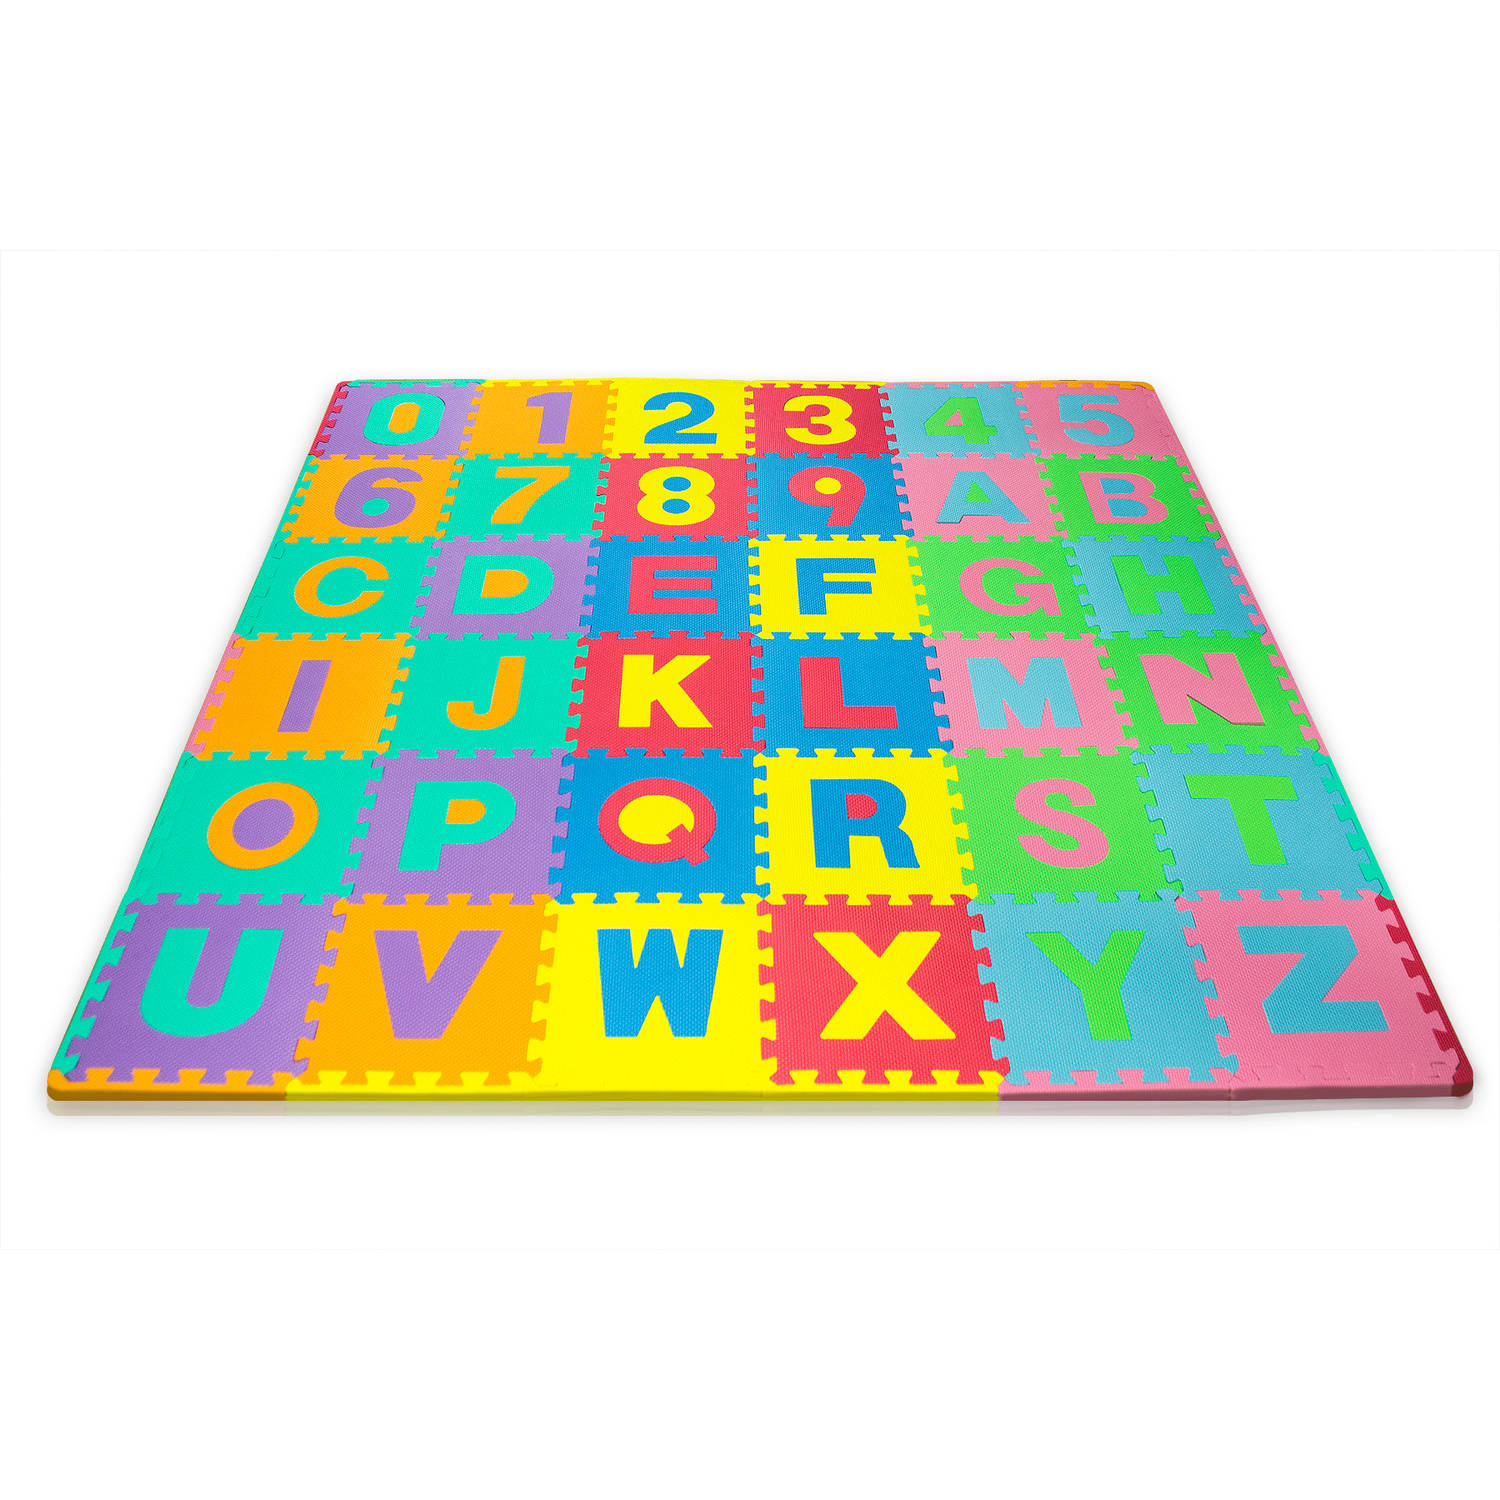 Matney Foam Mat of Alphabet and Number Puzzle Pieces with Borders Included, Great for Kids to Learn and Play, 36 Tile Pieces